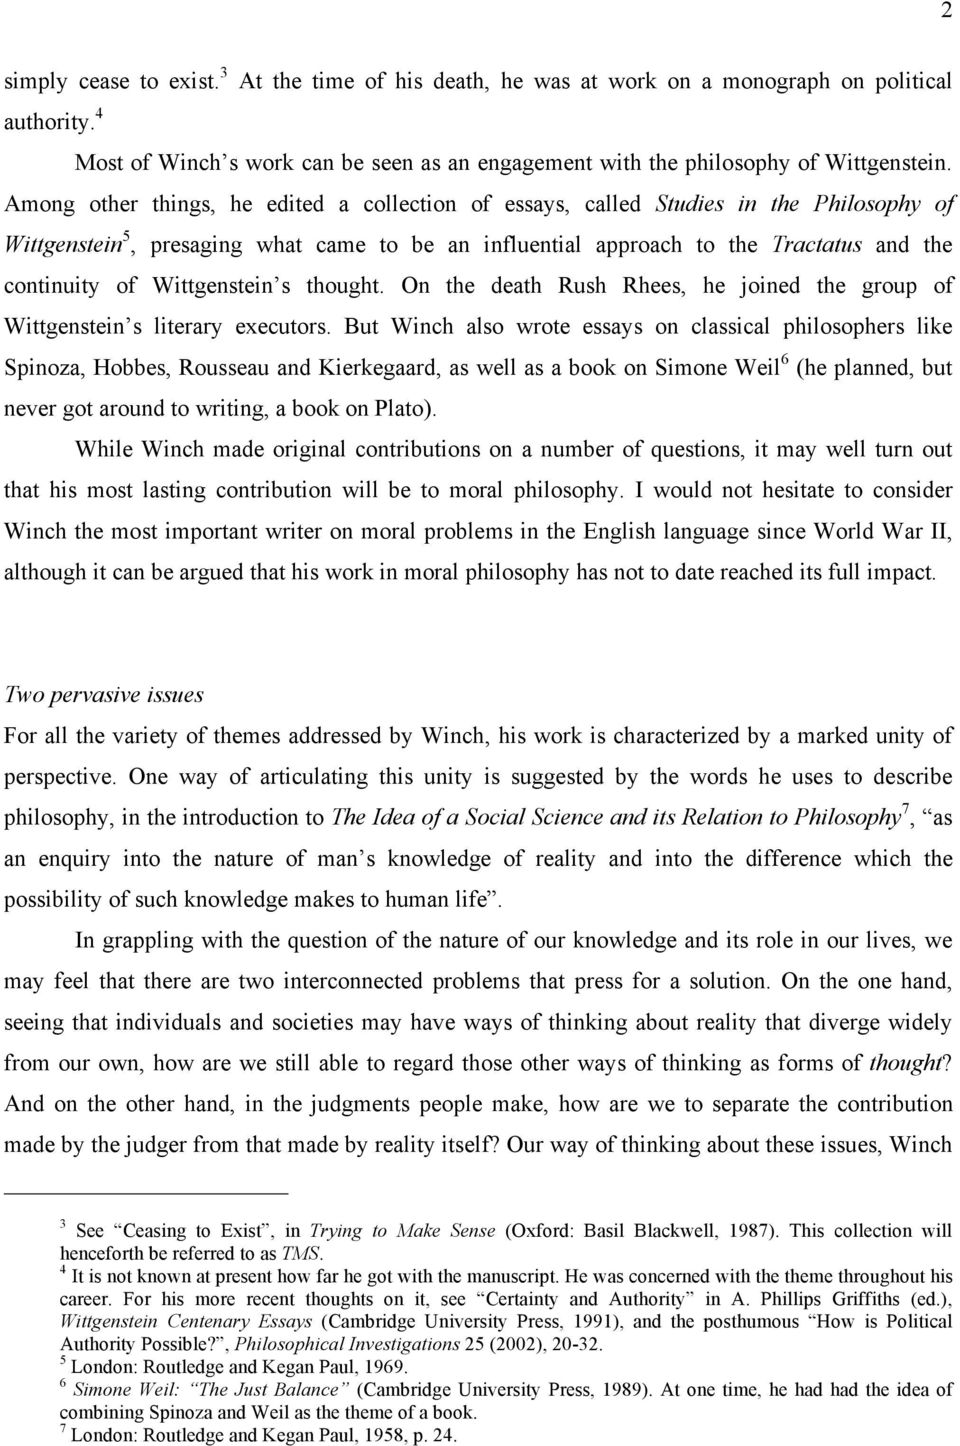 wittgenstein centenary essays